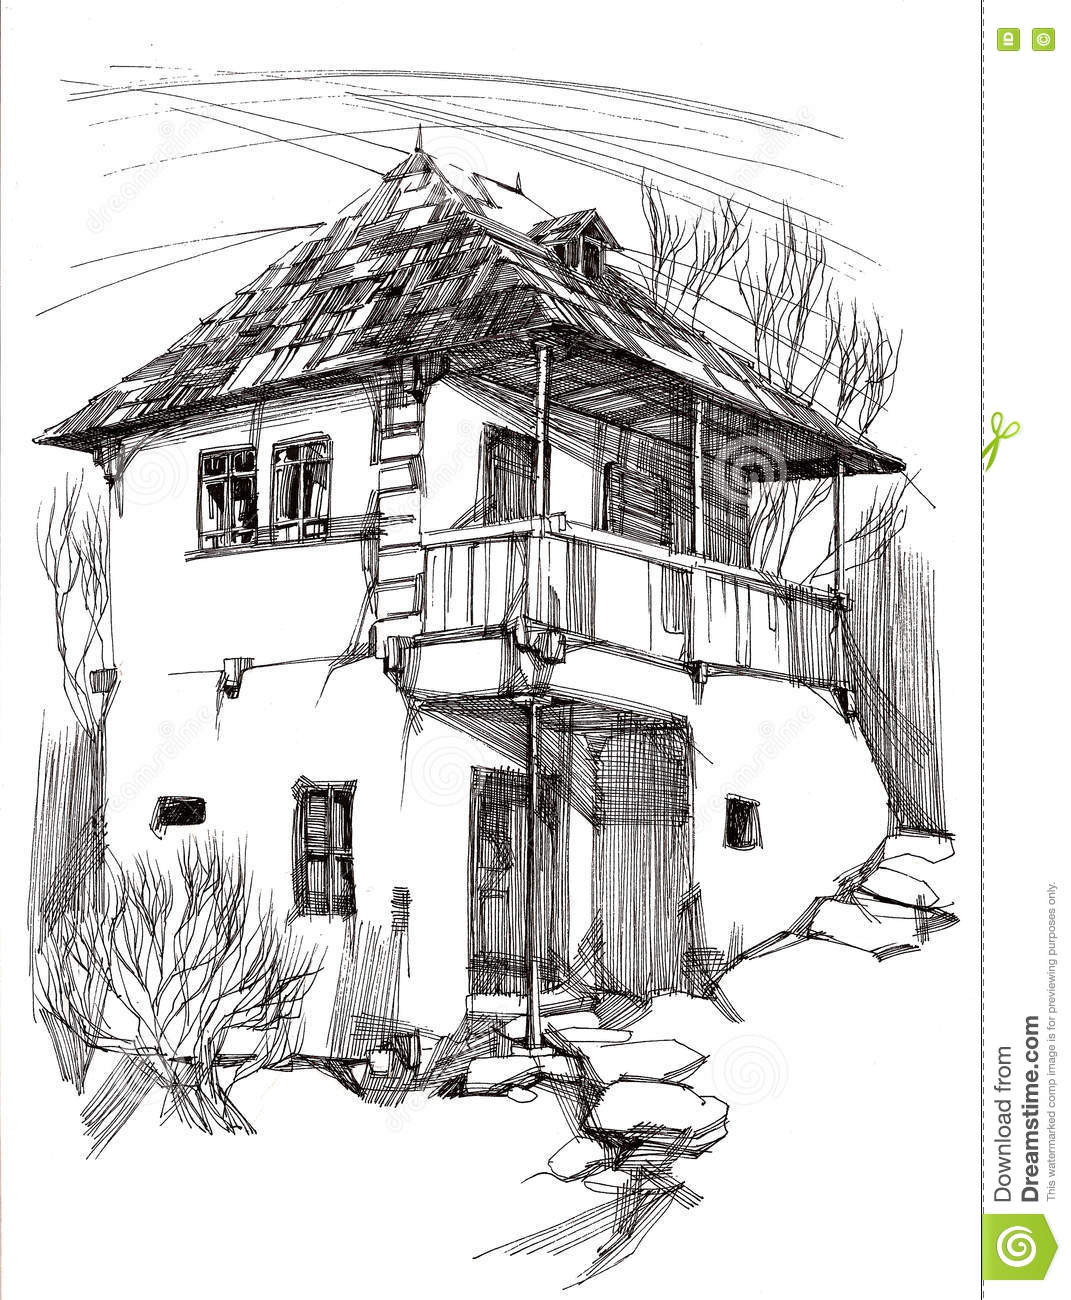 Ink Hand Drawing Landscape With An Old House From Romania